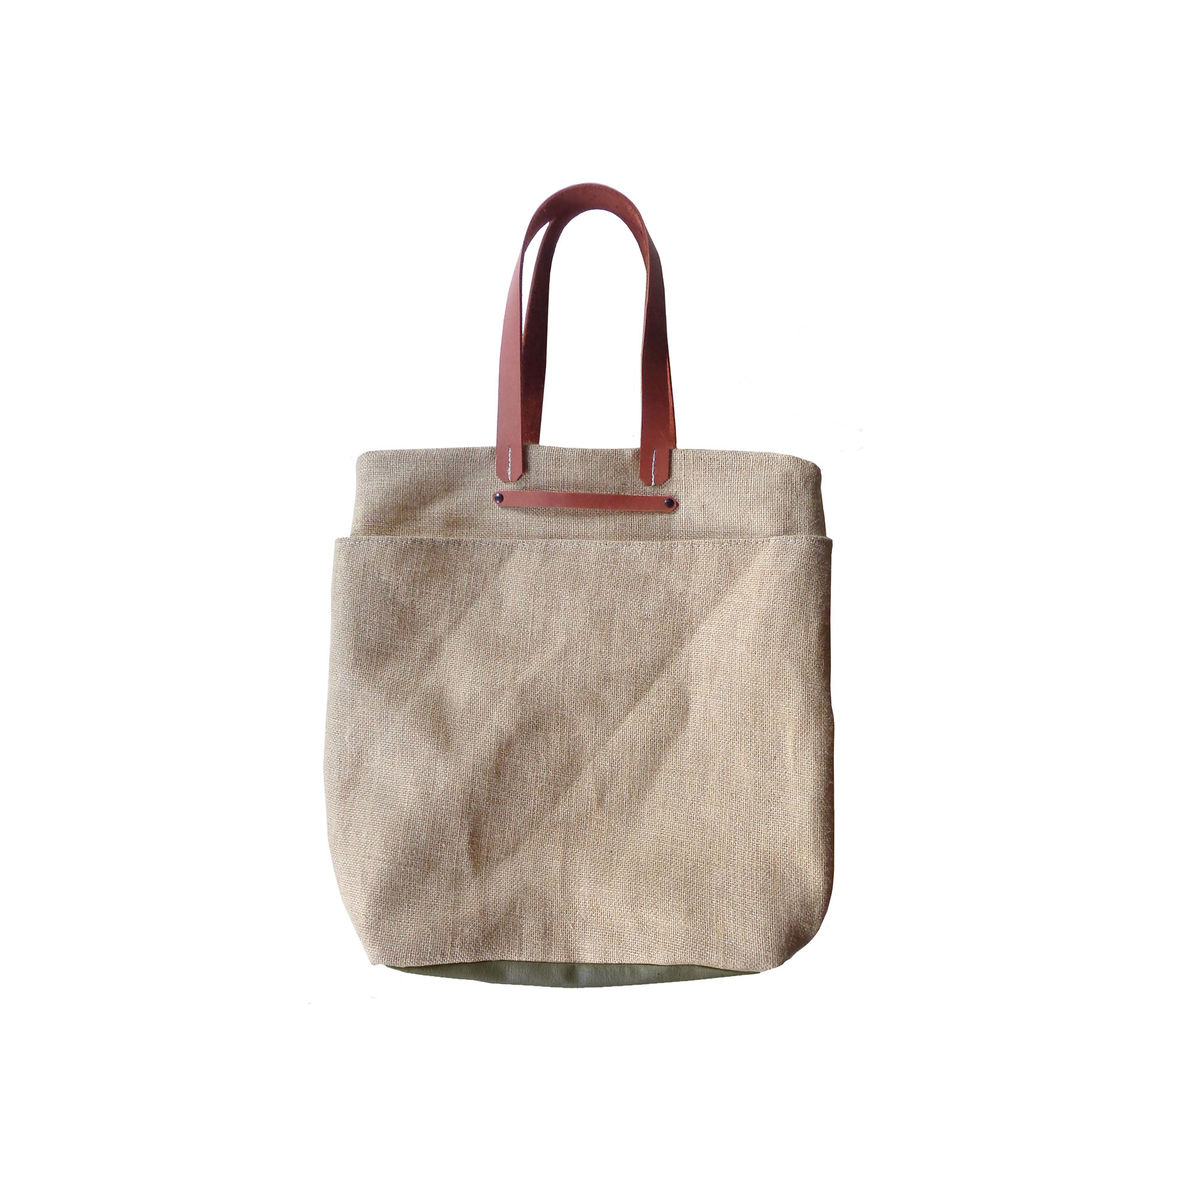 cf01fce53802 ... Everything Shopper Tote w  Leather Handles - Jute and Olive - product  images of ...